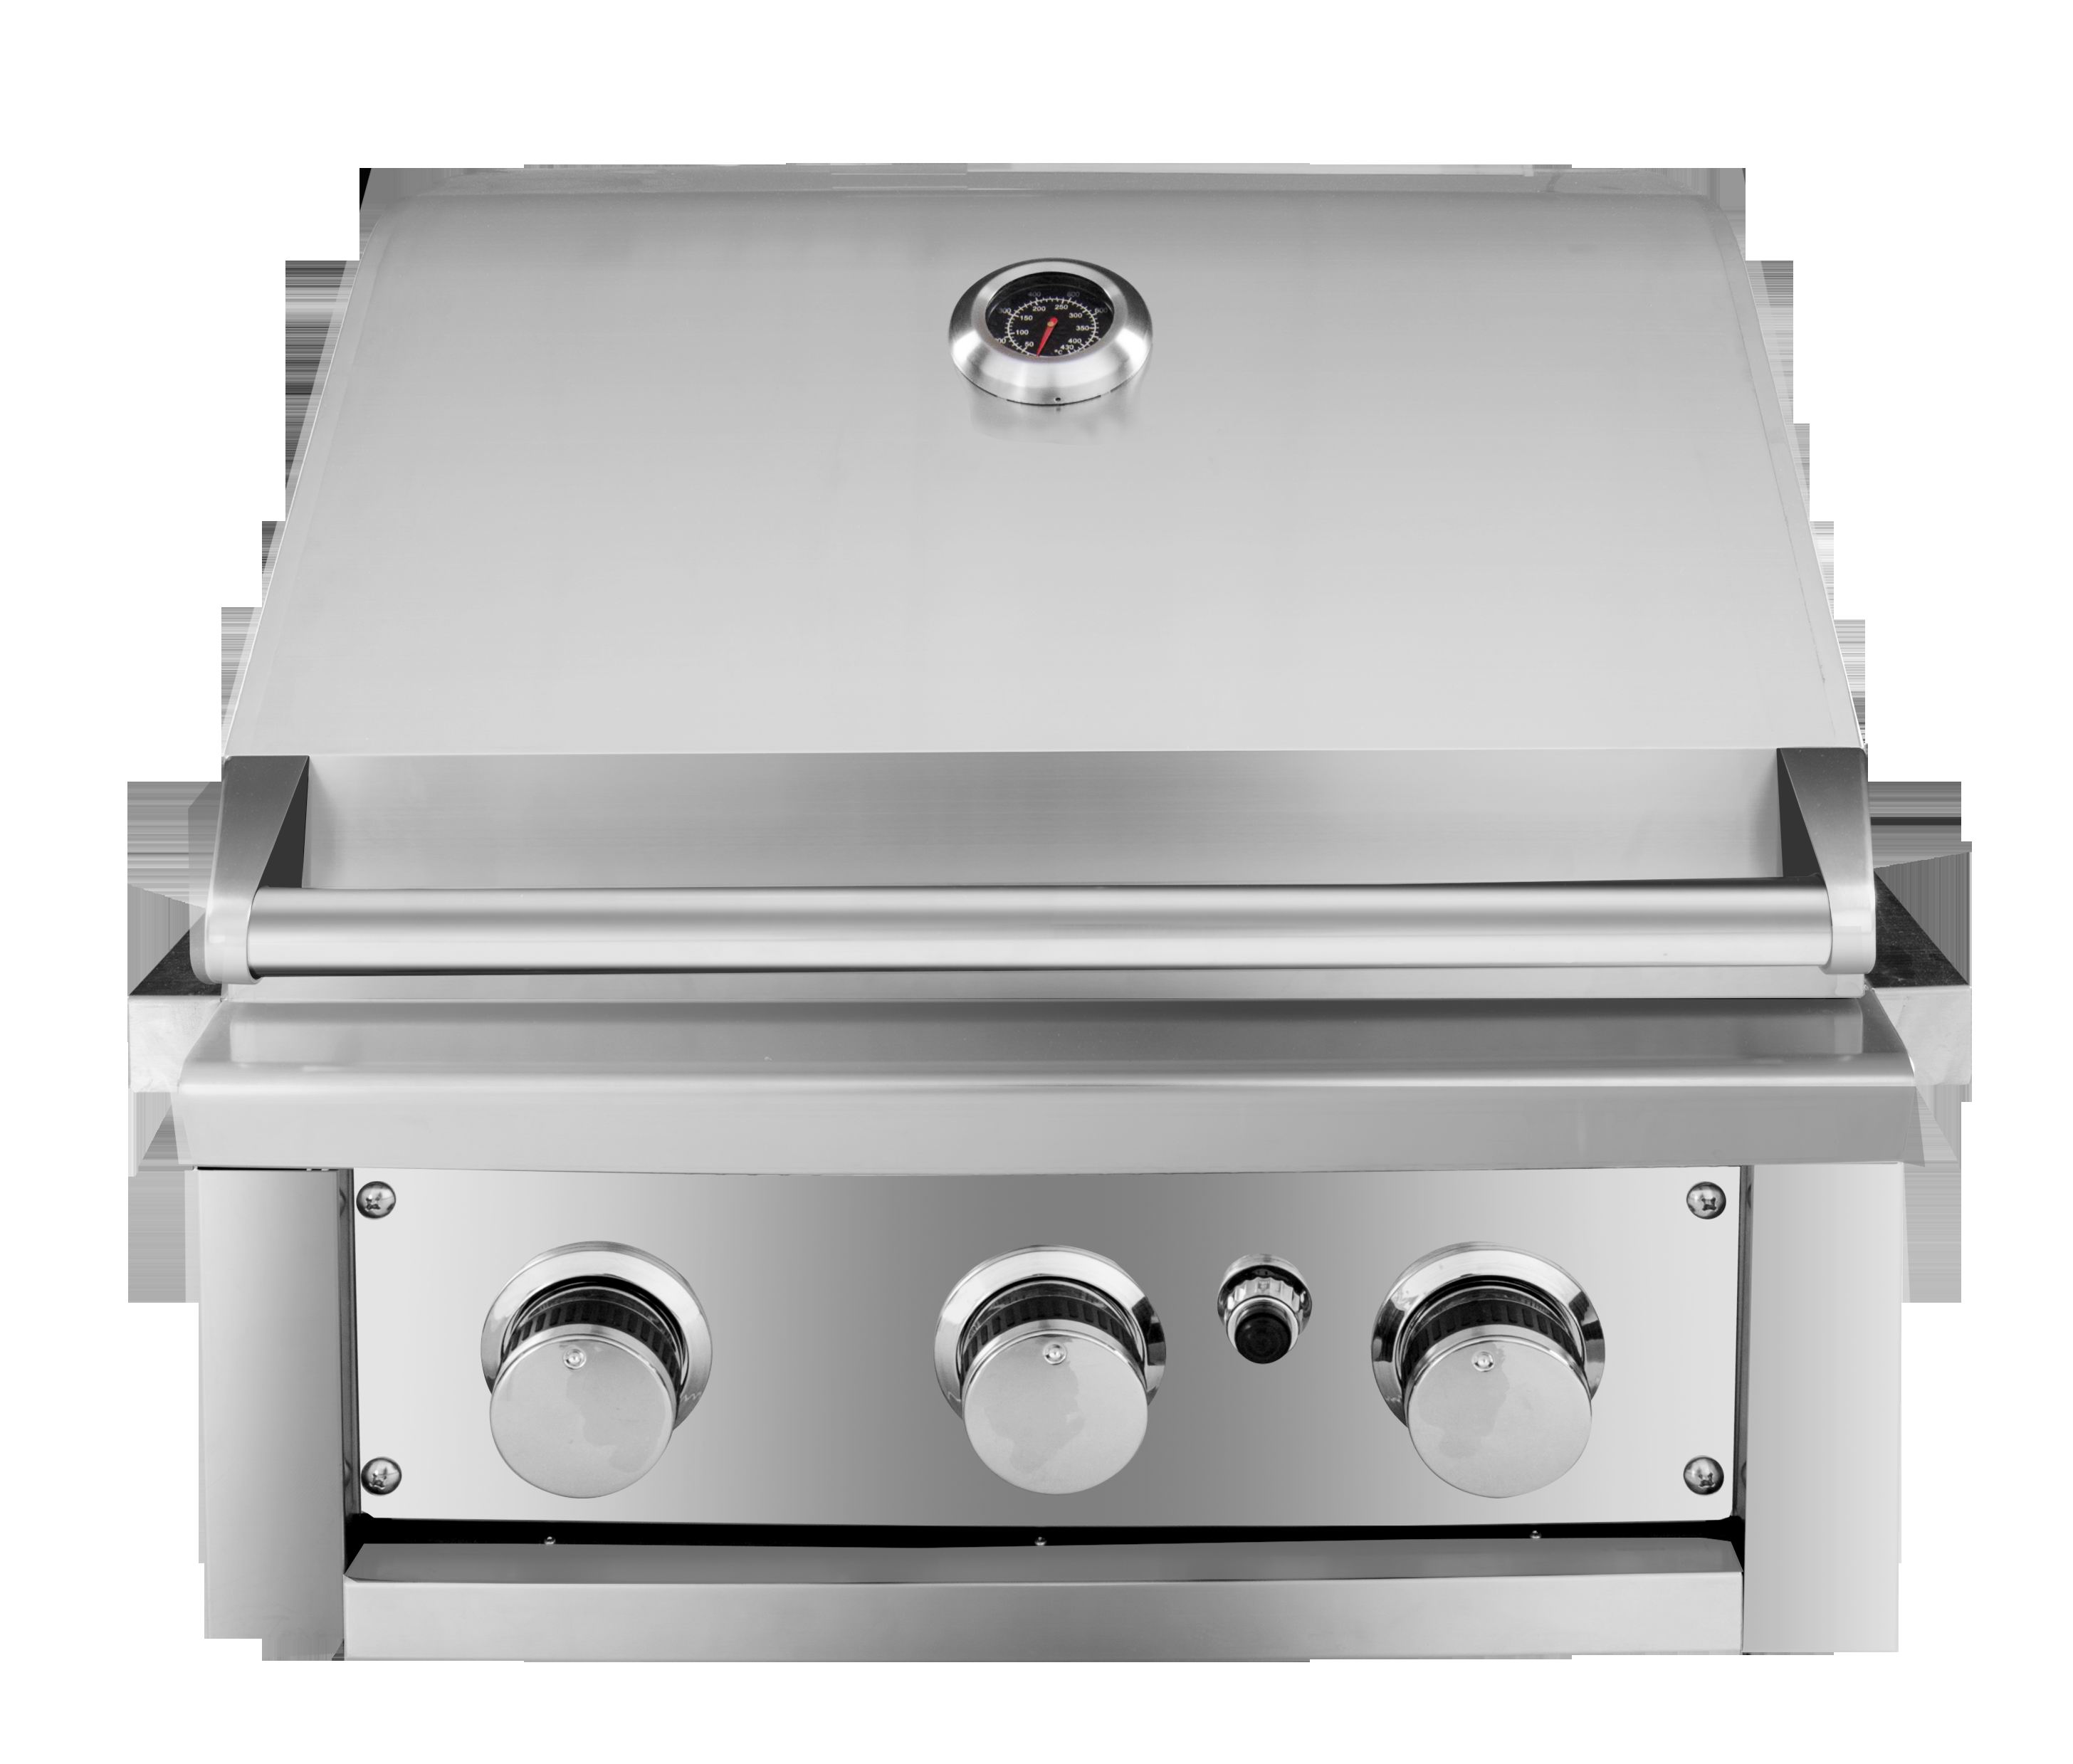 High quality deluxe built-in gas grill